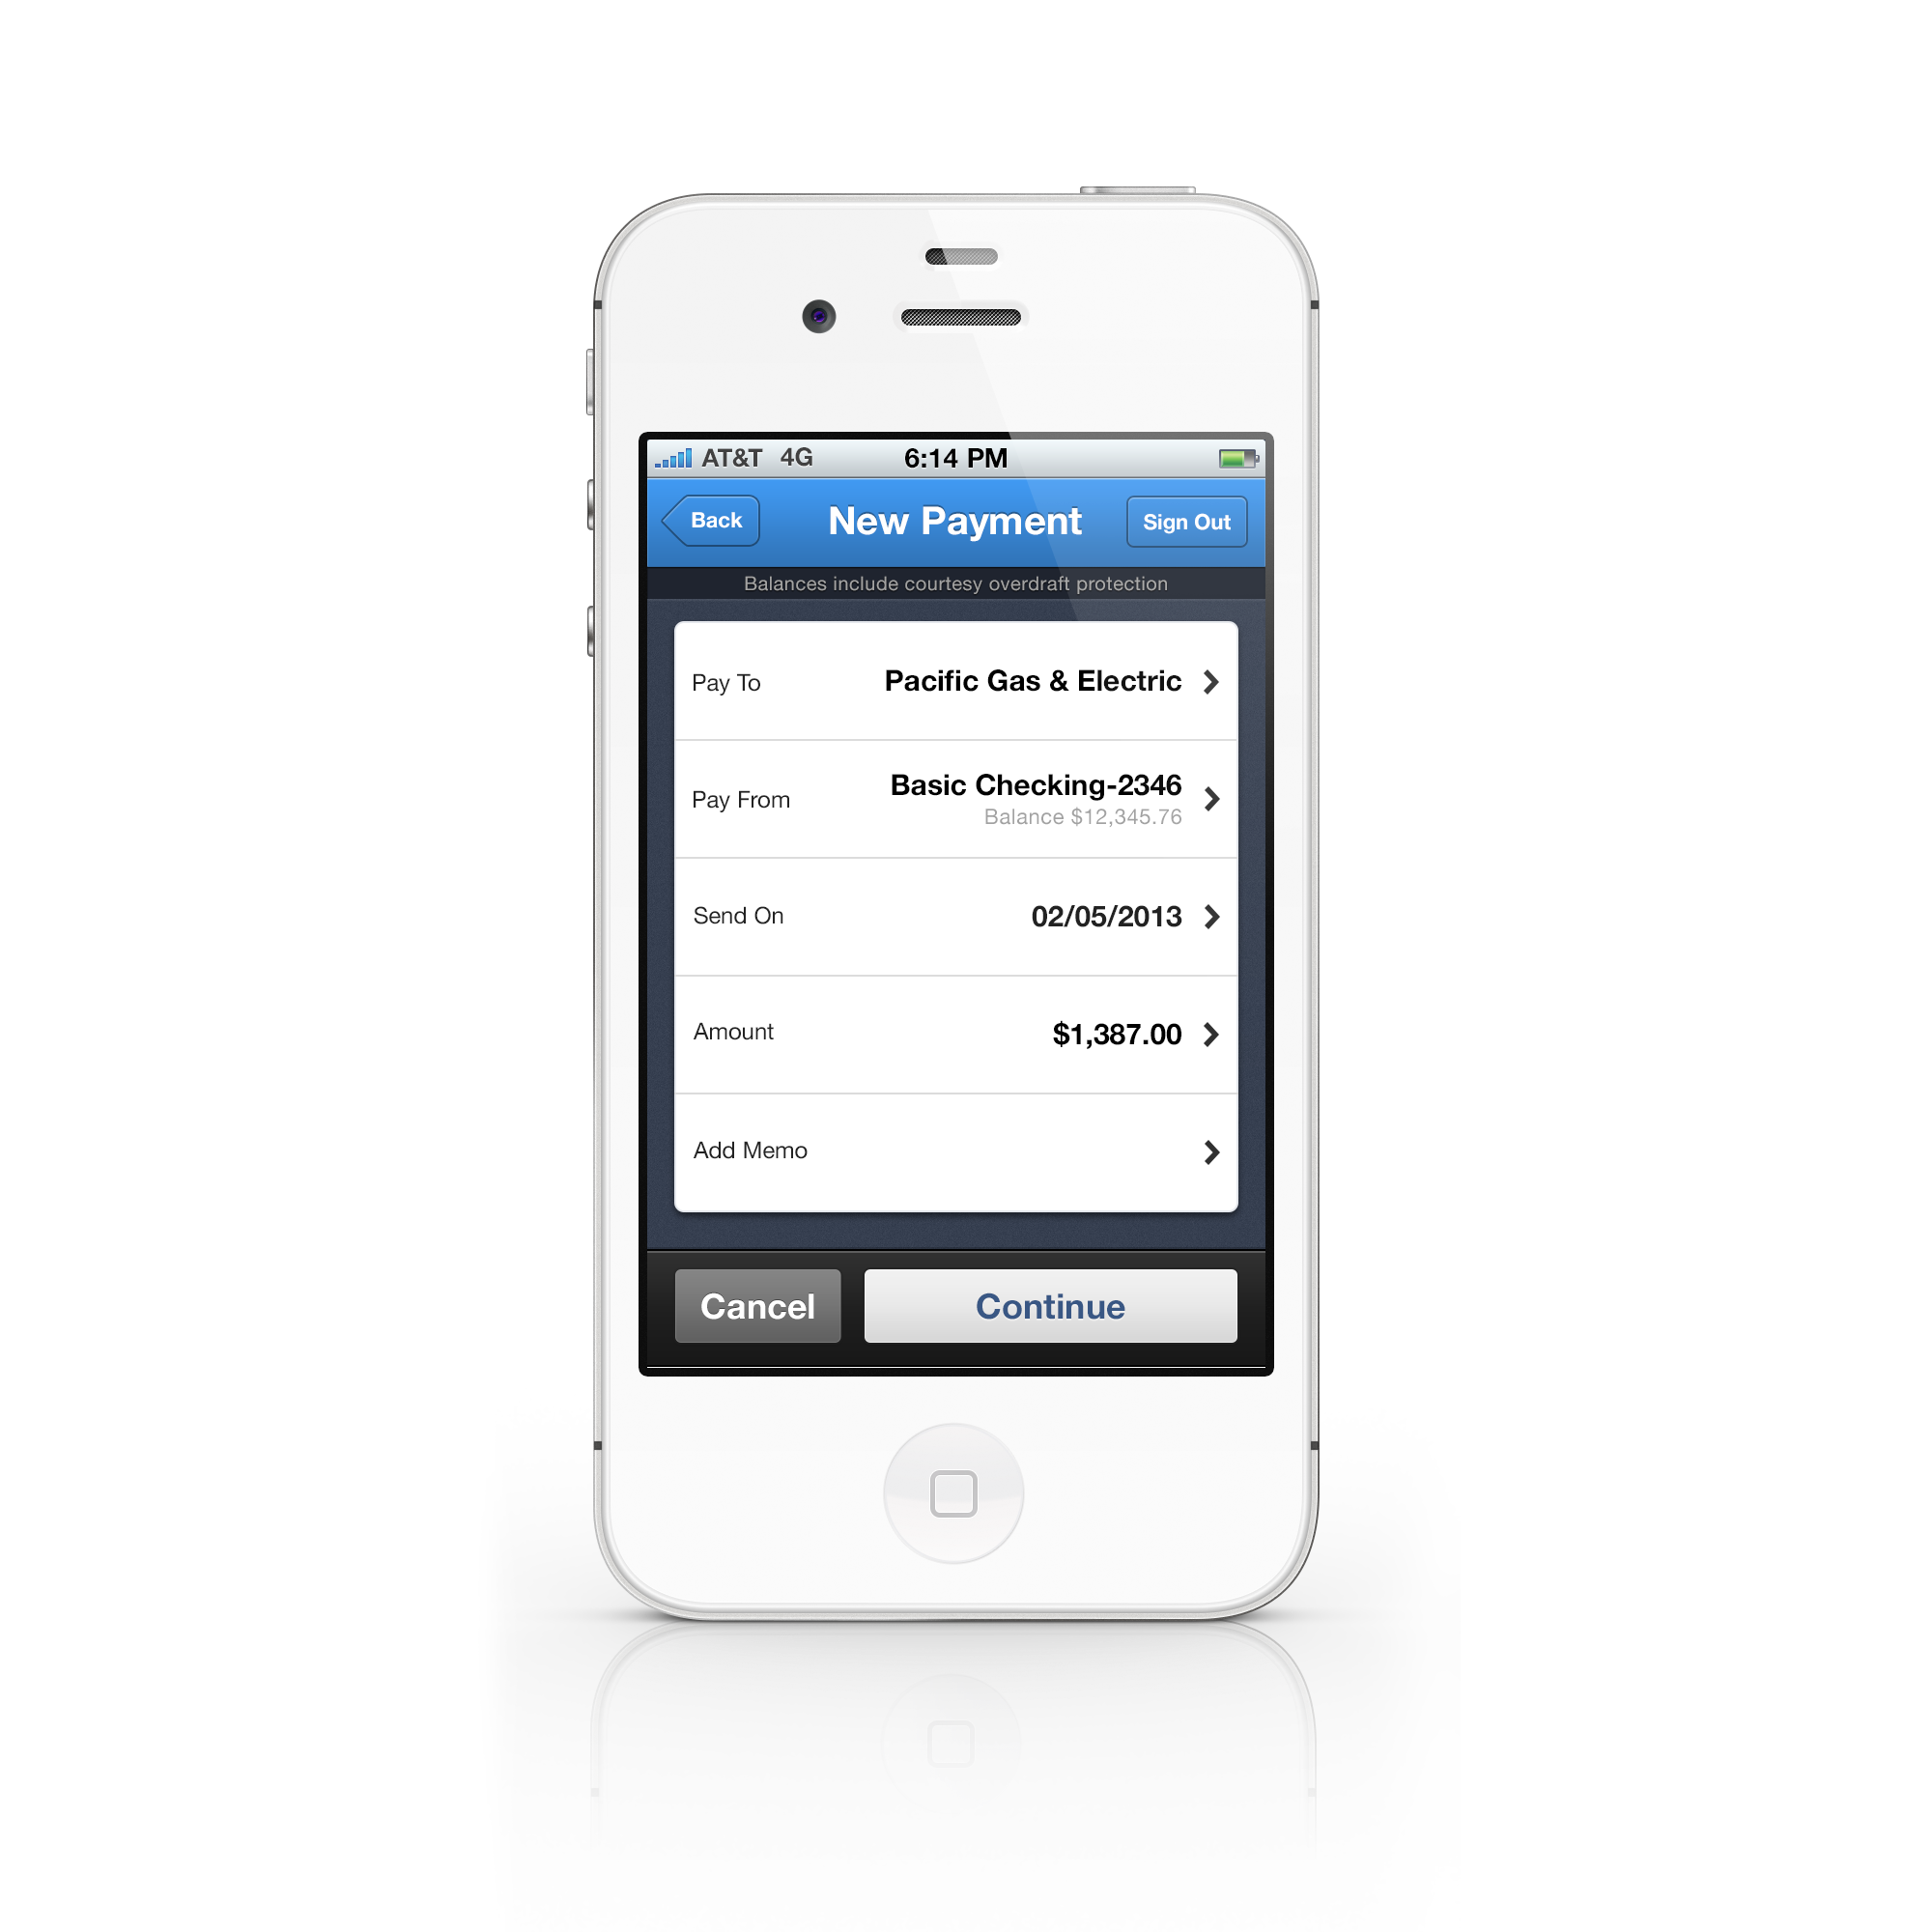 Mobile_Banking_iPhone_4_0014_Layer-Comp-15.png